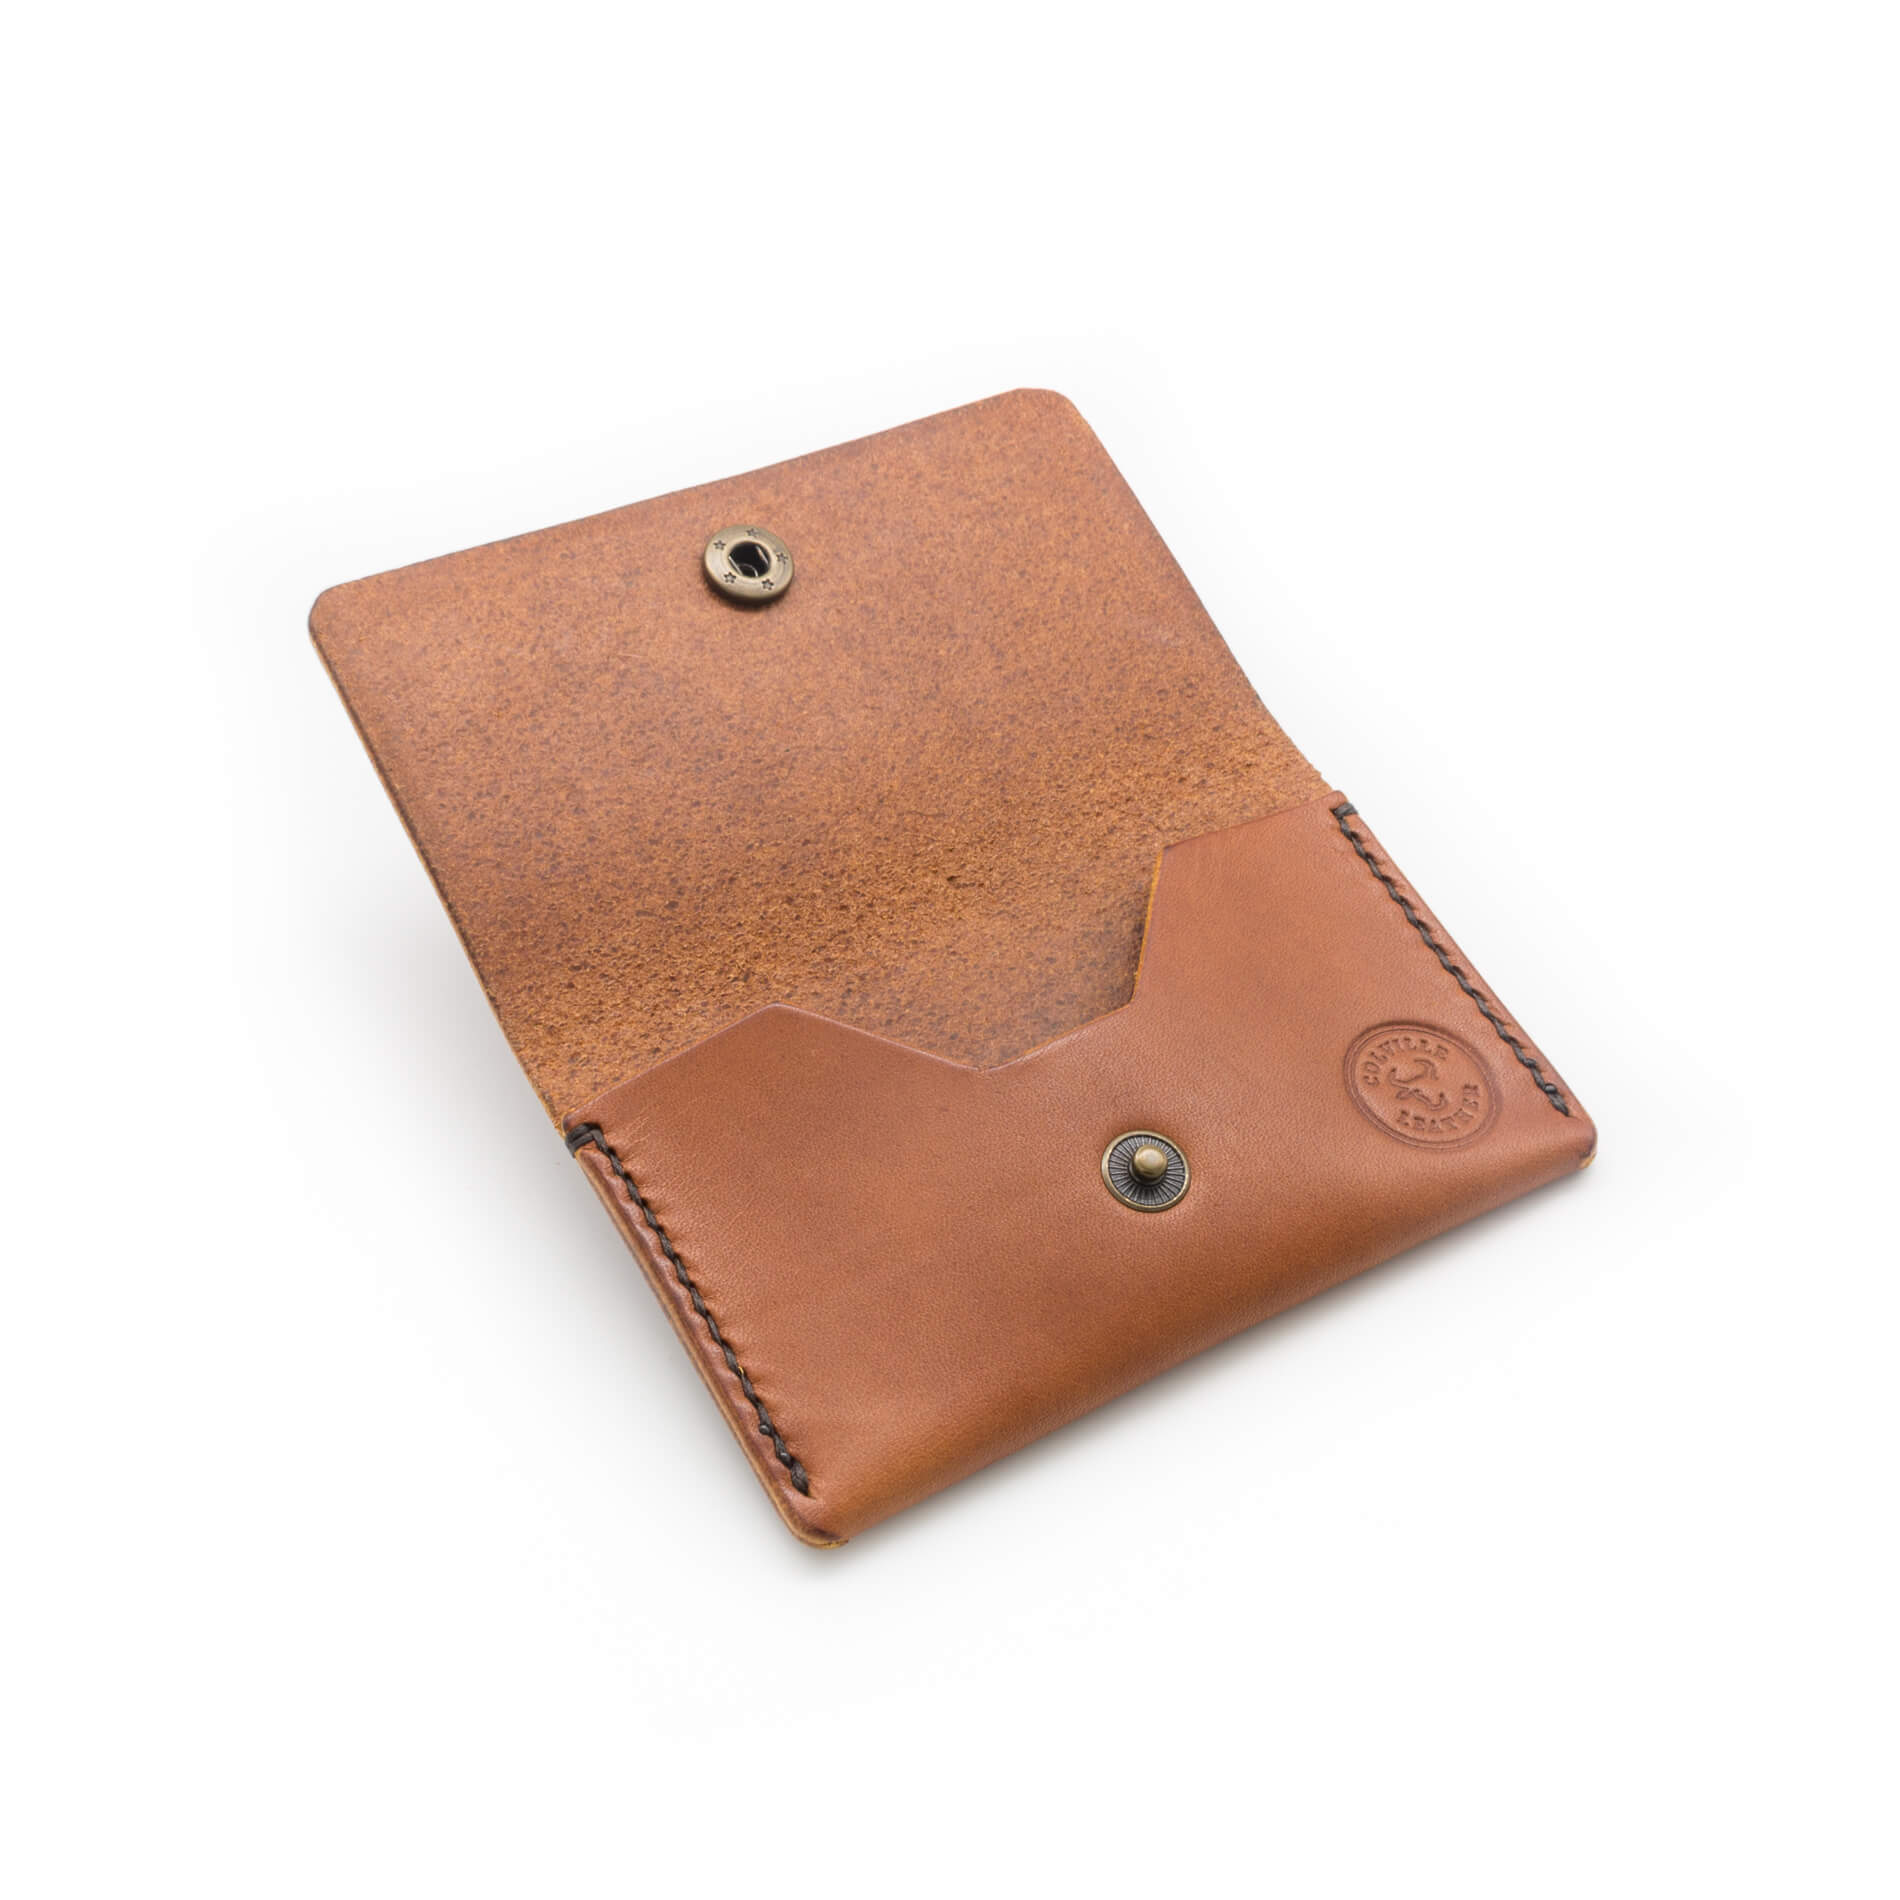 Card pouch handmade in Tan coloured leather